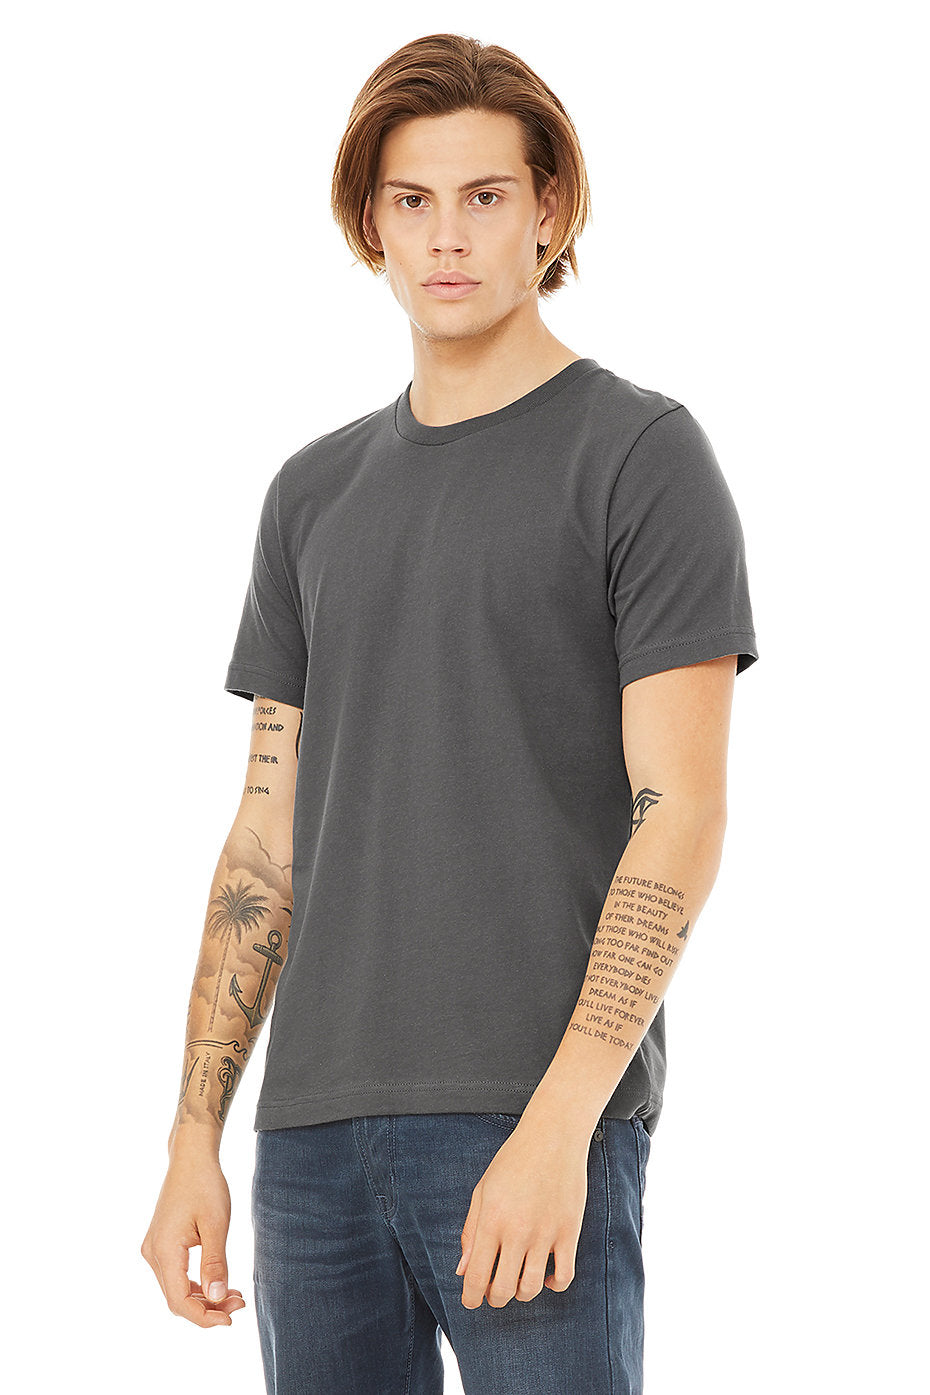 MENS 100% Cotton S/S Tee - Charcoal